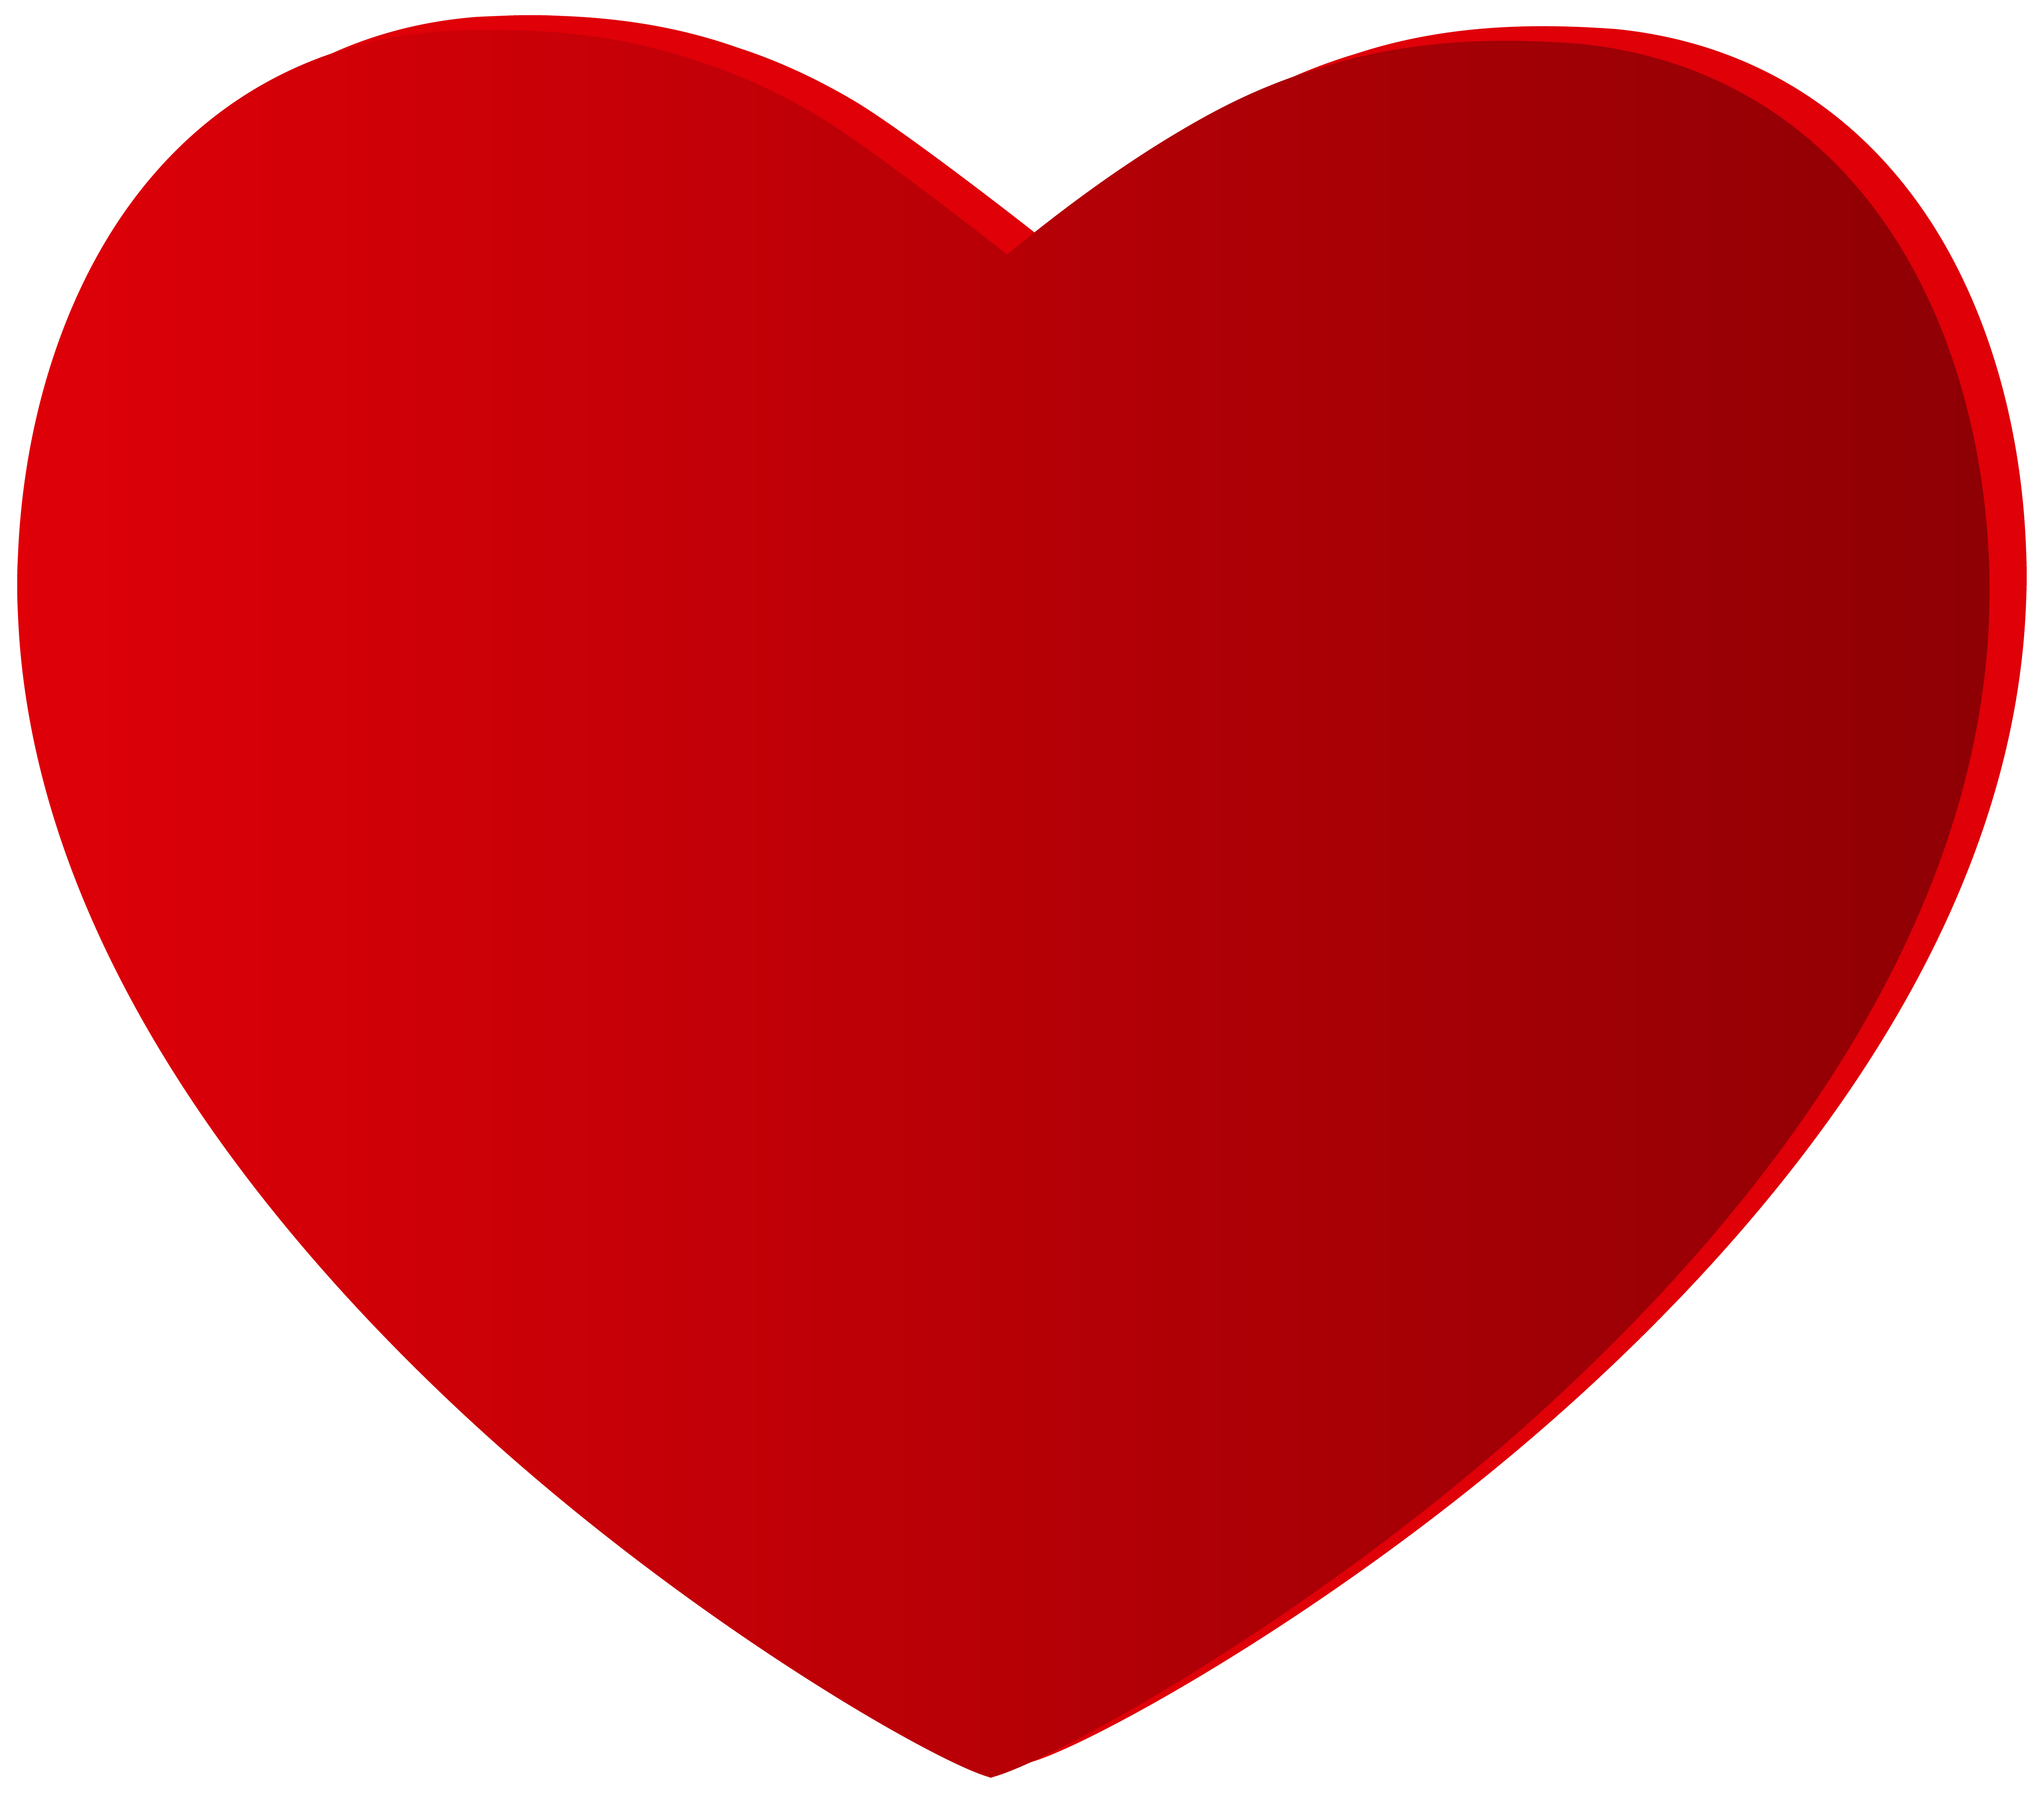 5000x4387 Large Red Heart Png Clipart